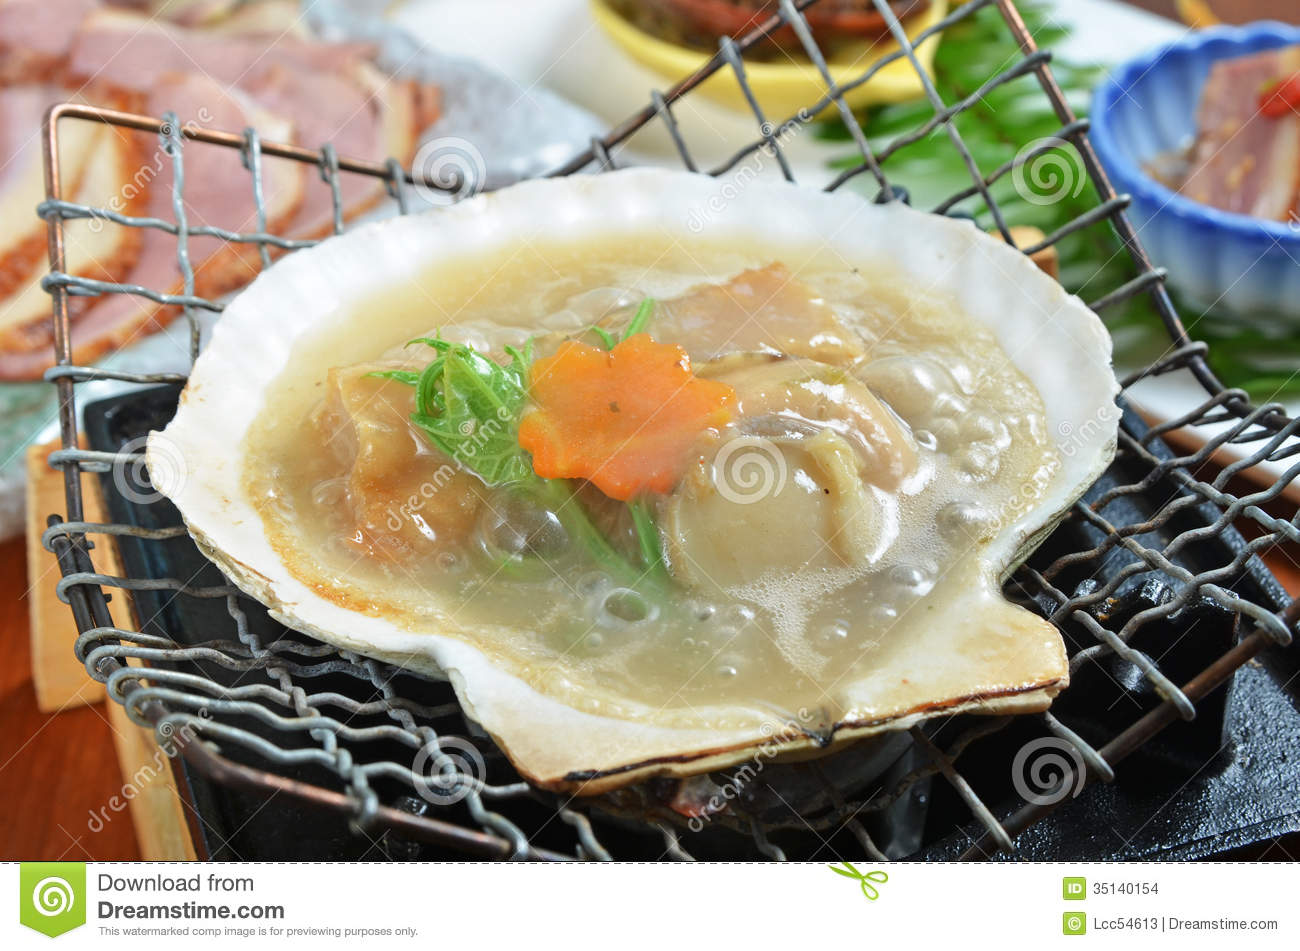 how to cook scallops on the stove